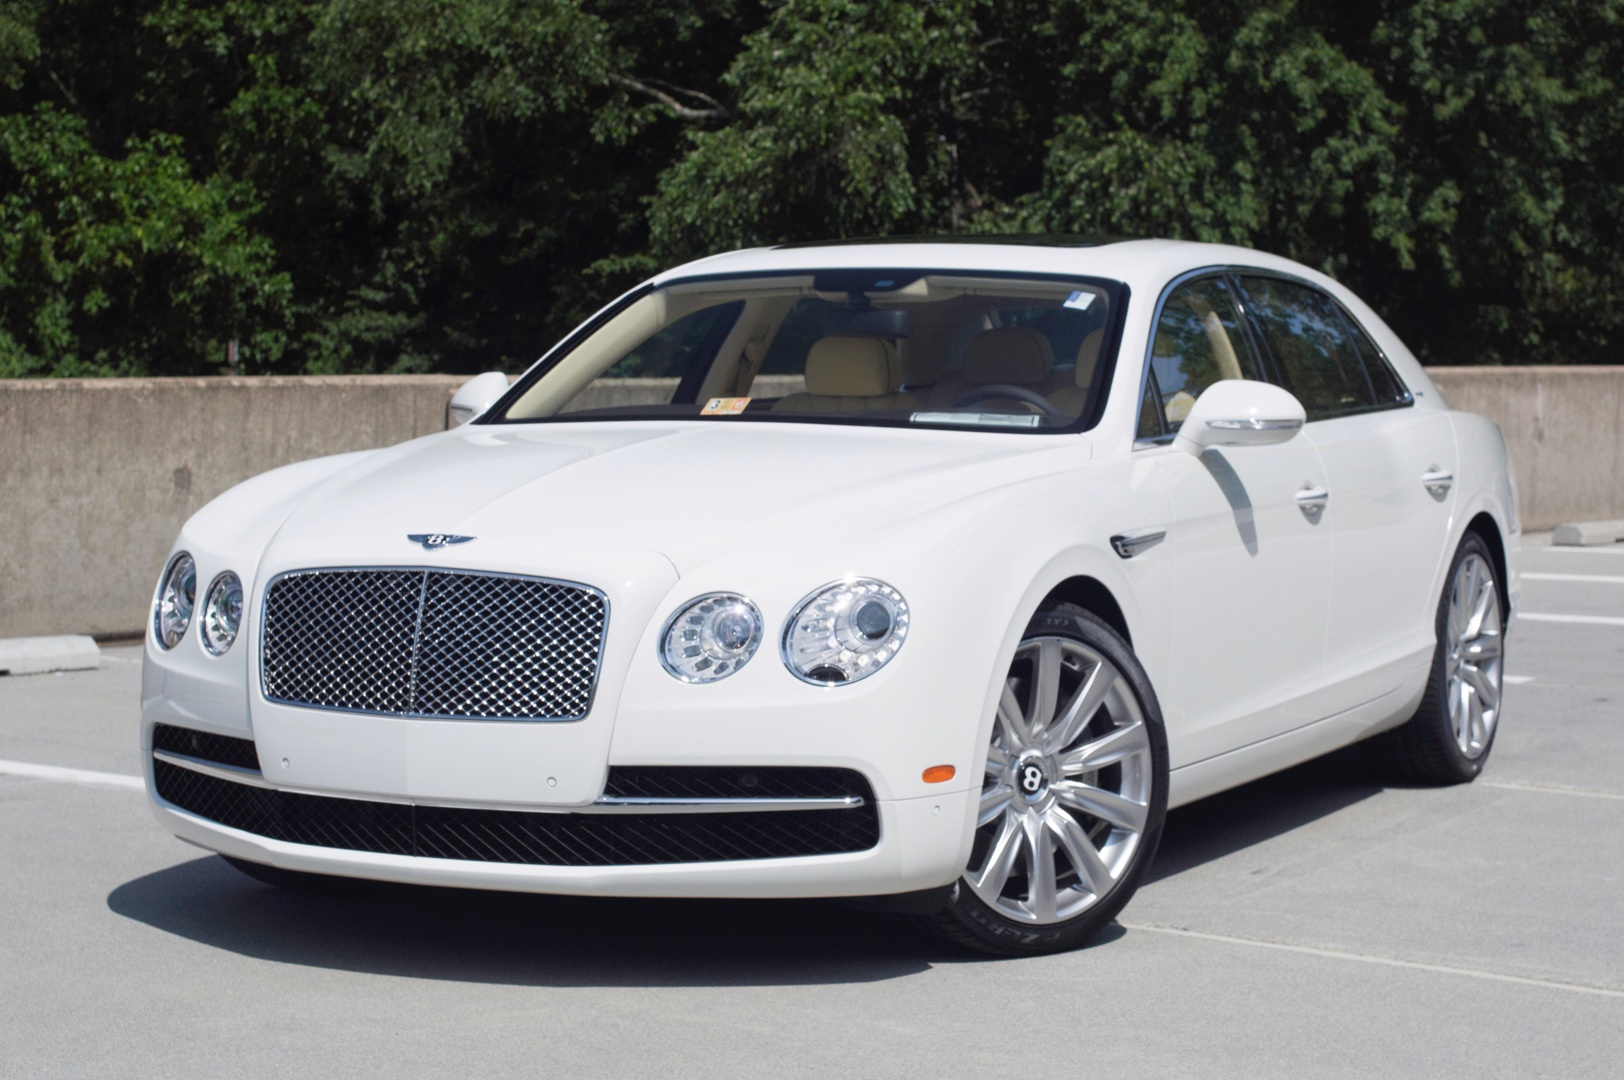 2014 bentley flying spur w12 stock # 4nc095025 for sale near vienna